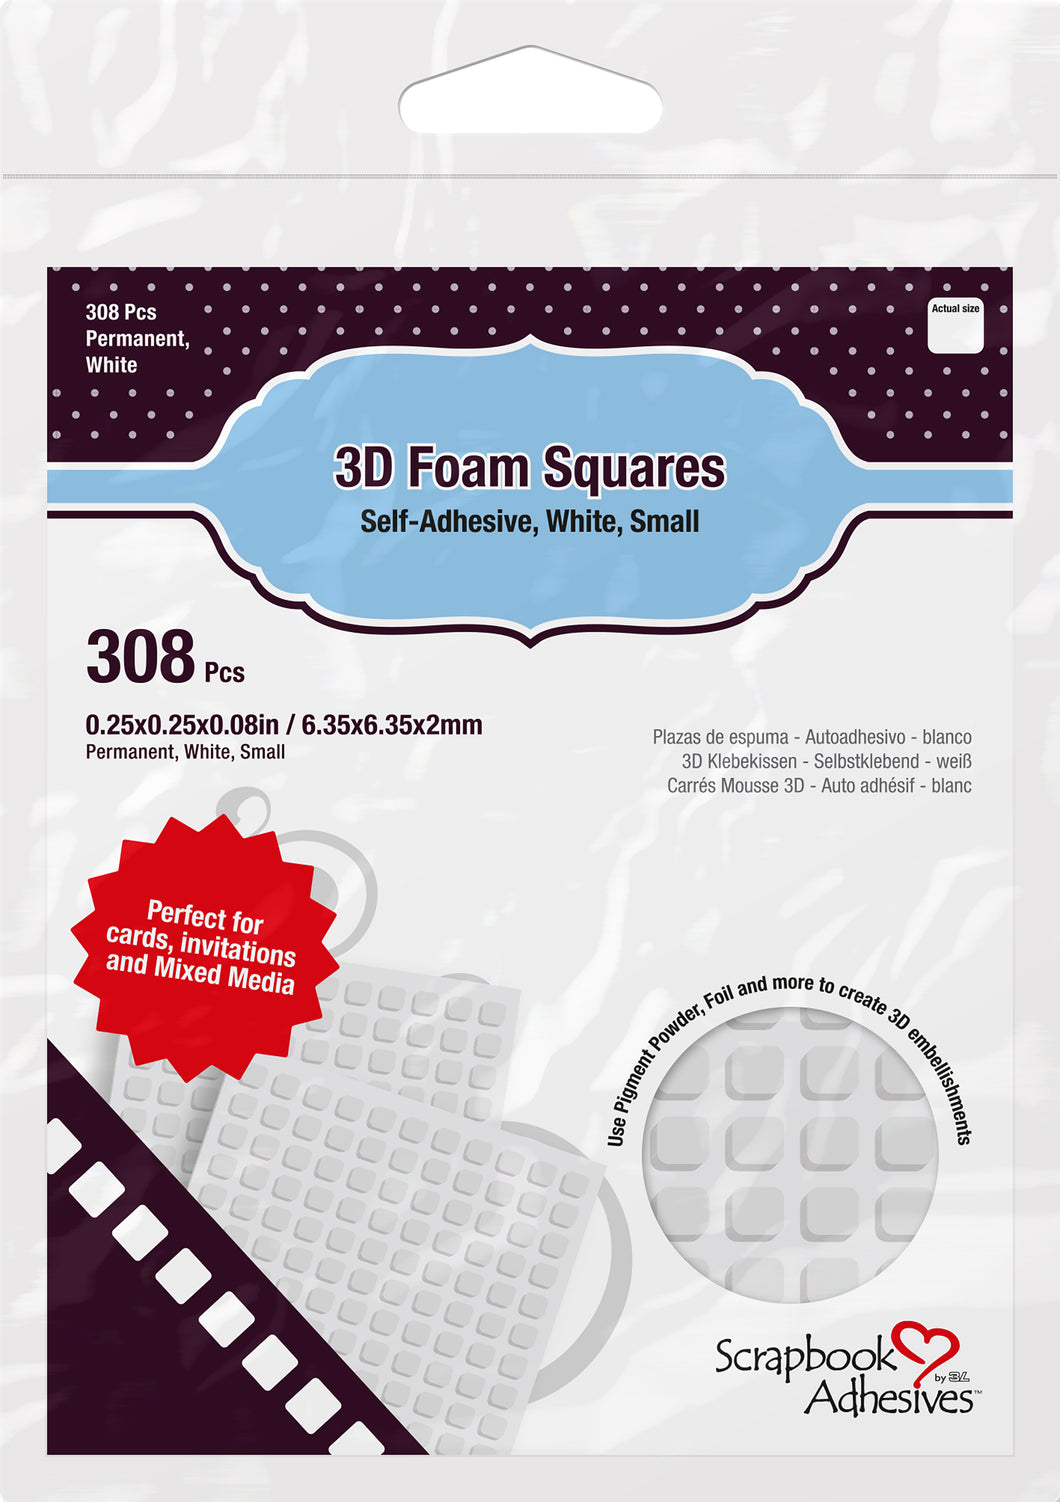 Scrapbook Adhesives 3D Foam Squares White Small